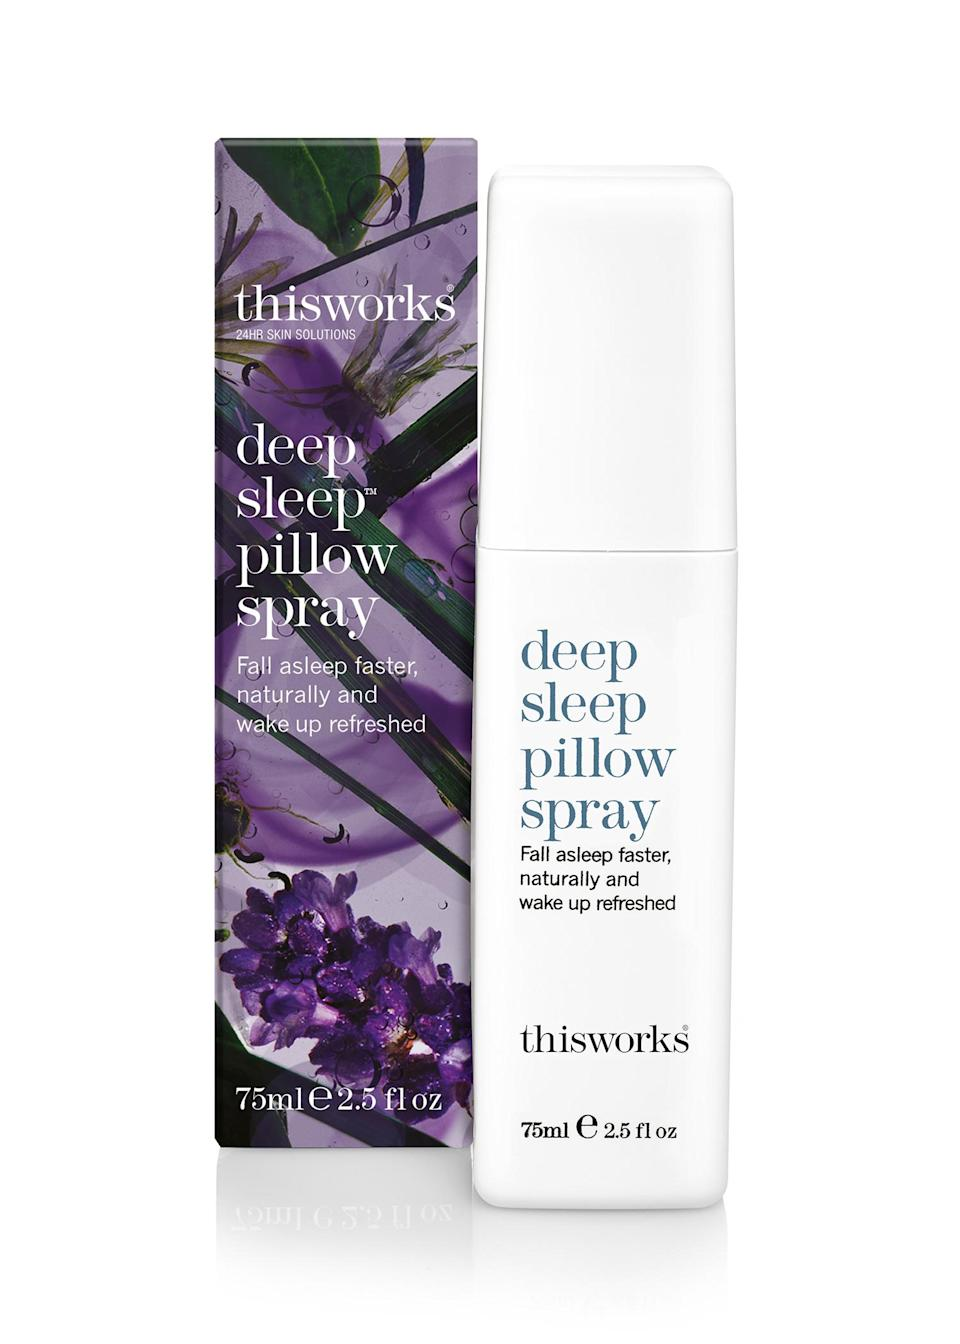 """<p>It's easy to see why this natural spray is a best selller. It's ideal for travel or simply whenever you need some help drifting off; the lavender, vetivert and camomile blend has been proven to calm both mind and body. <a href=""""https://www.boots.com/this-works-deep-sleep-pillow-spray-75ml-10134025"""" rel=""""nofollow noopener"""" target=""""_blank"""" data-ylk=""""slk:Buy here"""" class=""""link rapid-noclick-resp""""><em>Buy here</em></a>. </p>"""